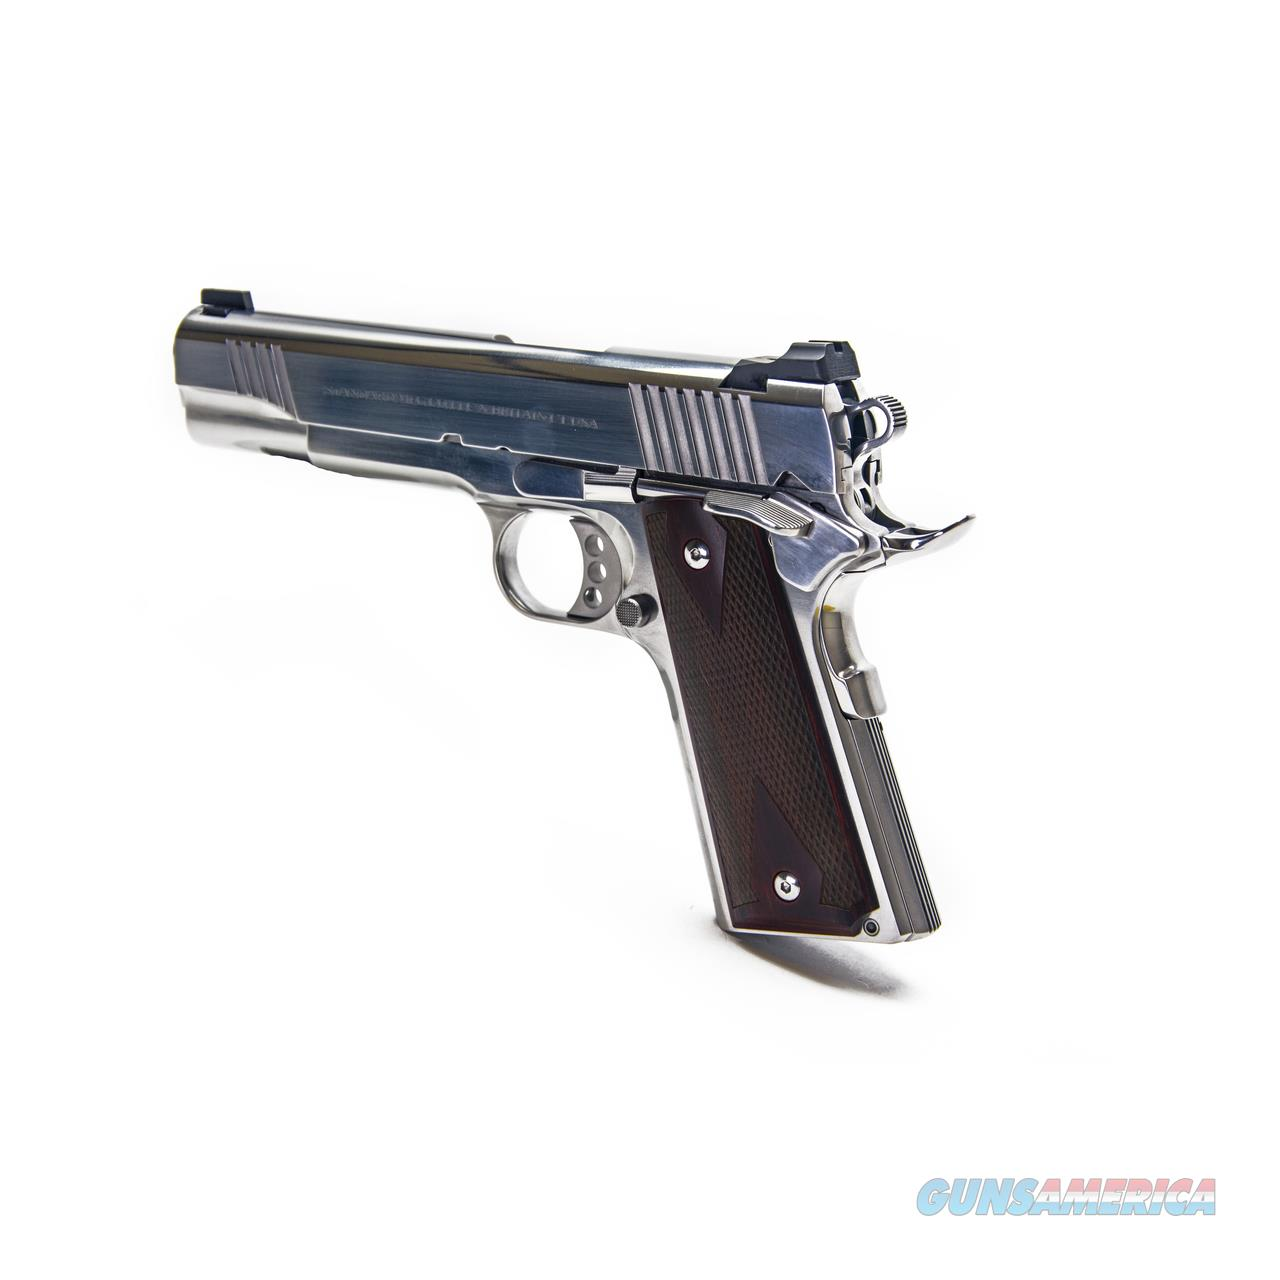 Standard Manufacturing 1911 Stainless Steel  Guns > Pistols > 1911 Pistol Copies (non-Colt)